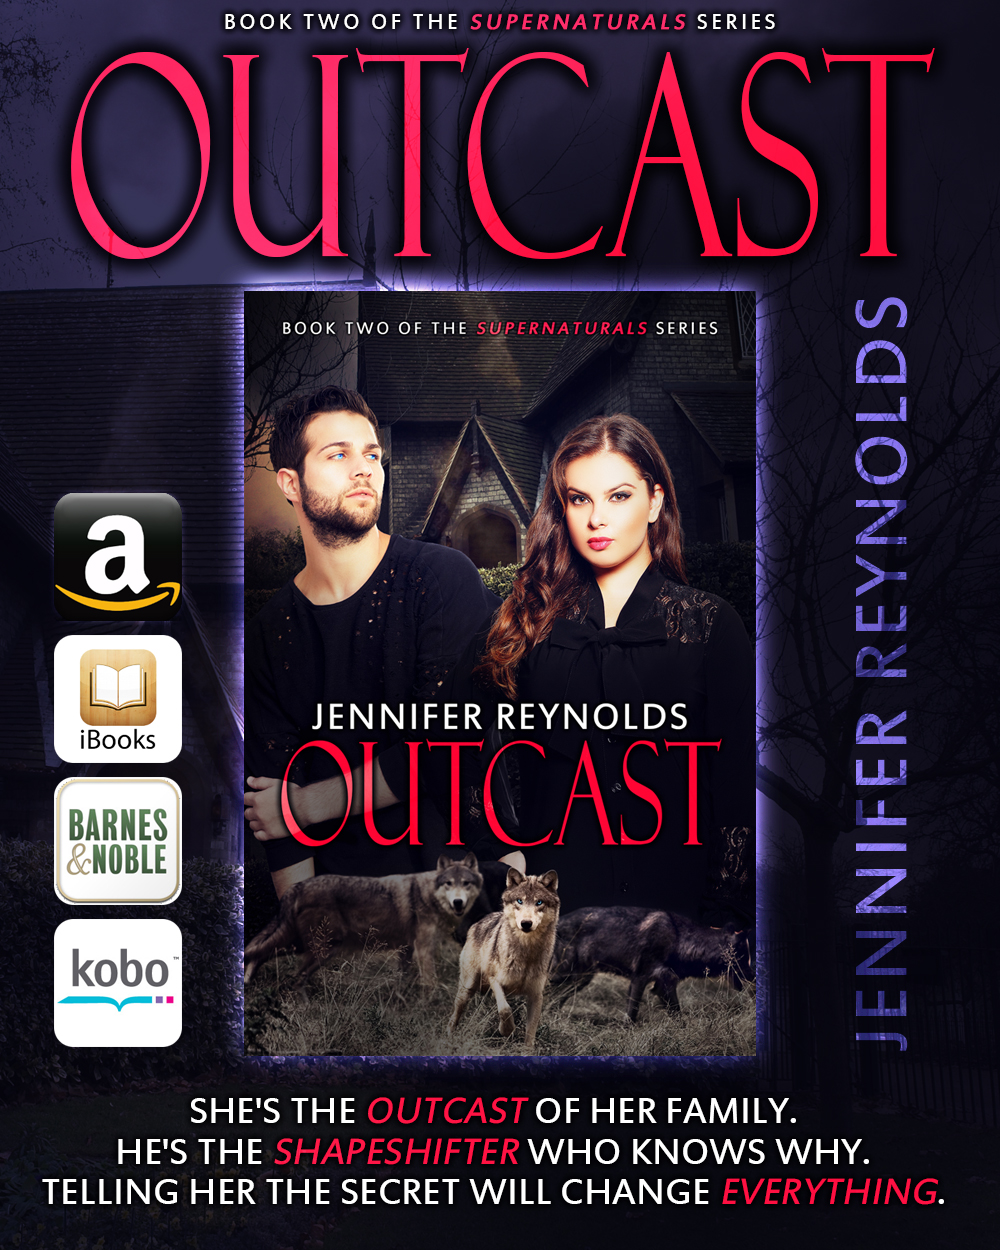 Outcast is now available on Audio at Audible.com.  Amazon   iTunes    NOOK    Kobo    Audible